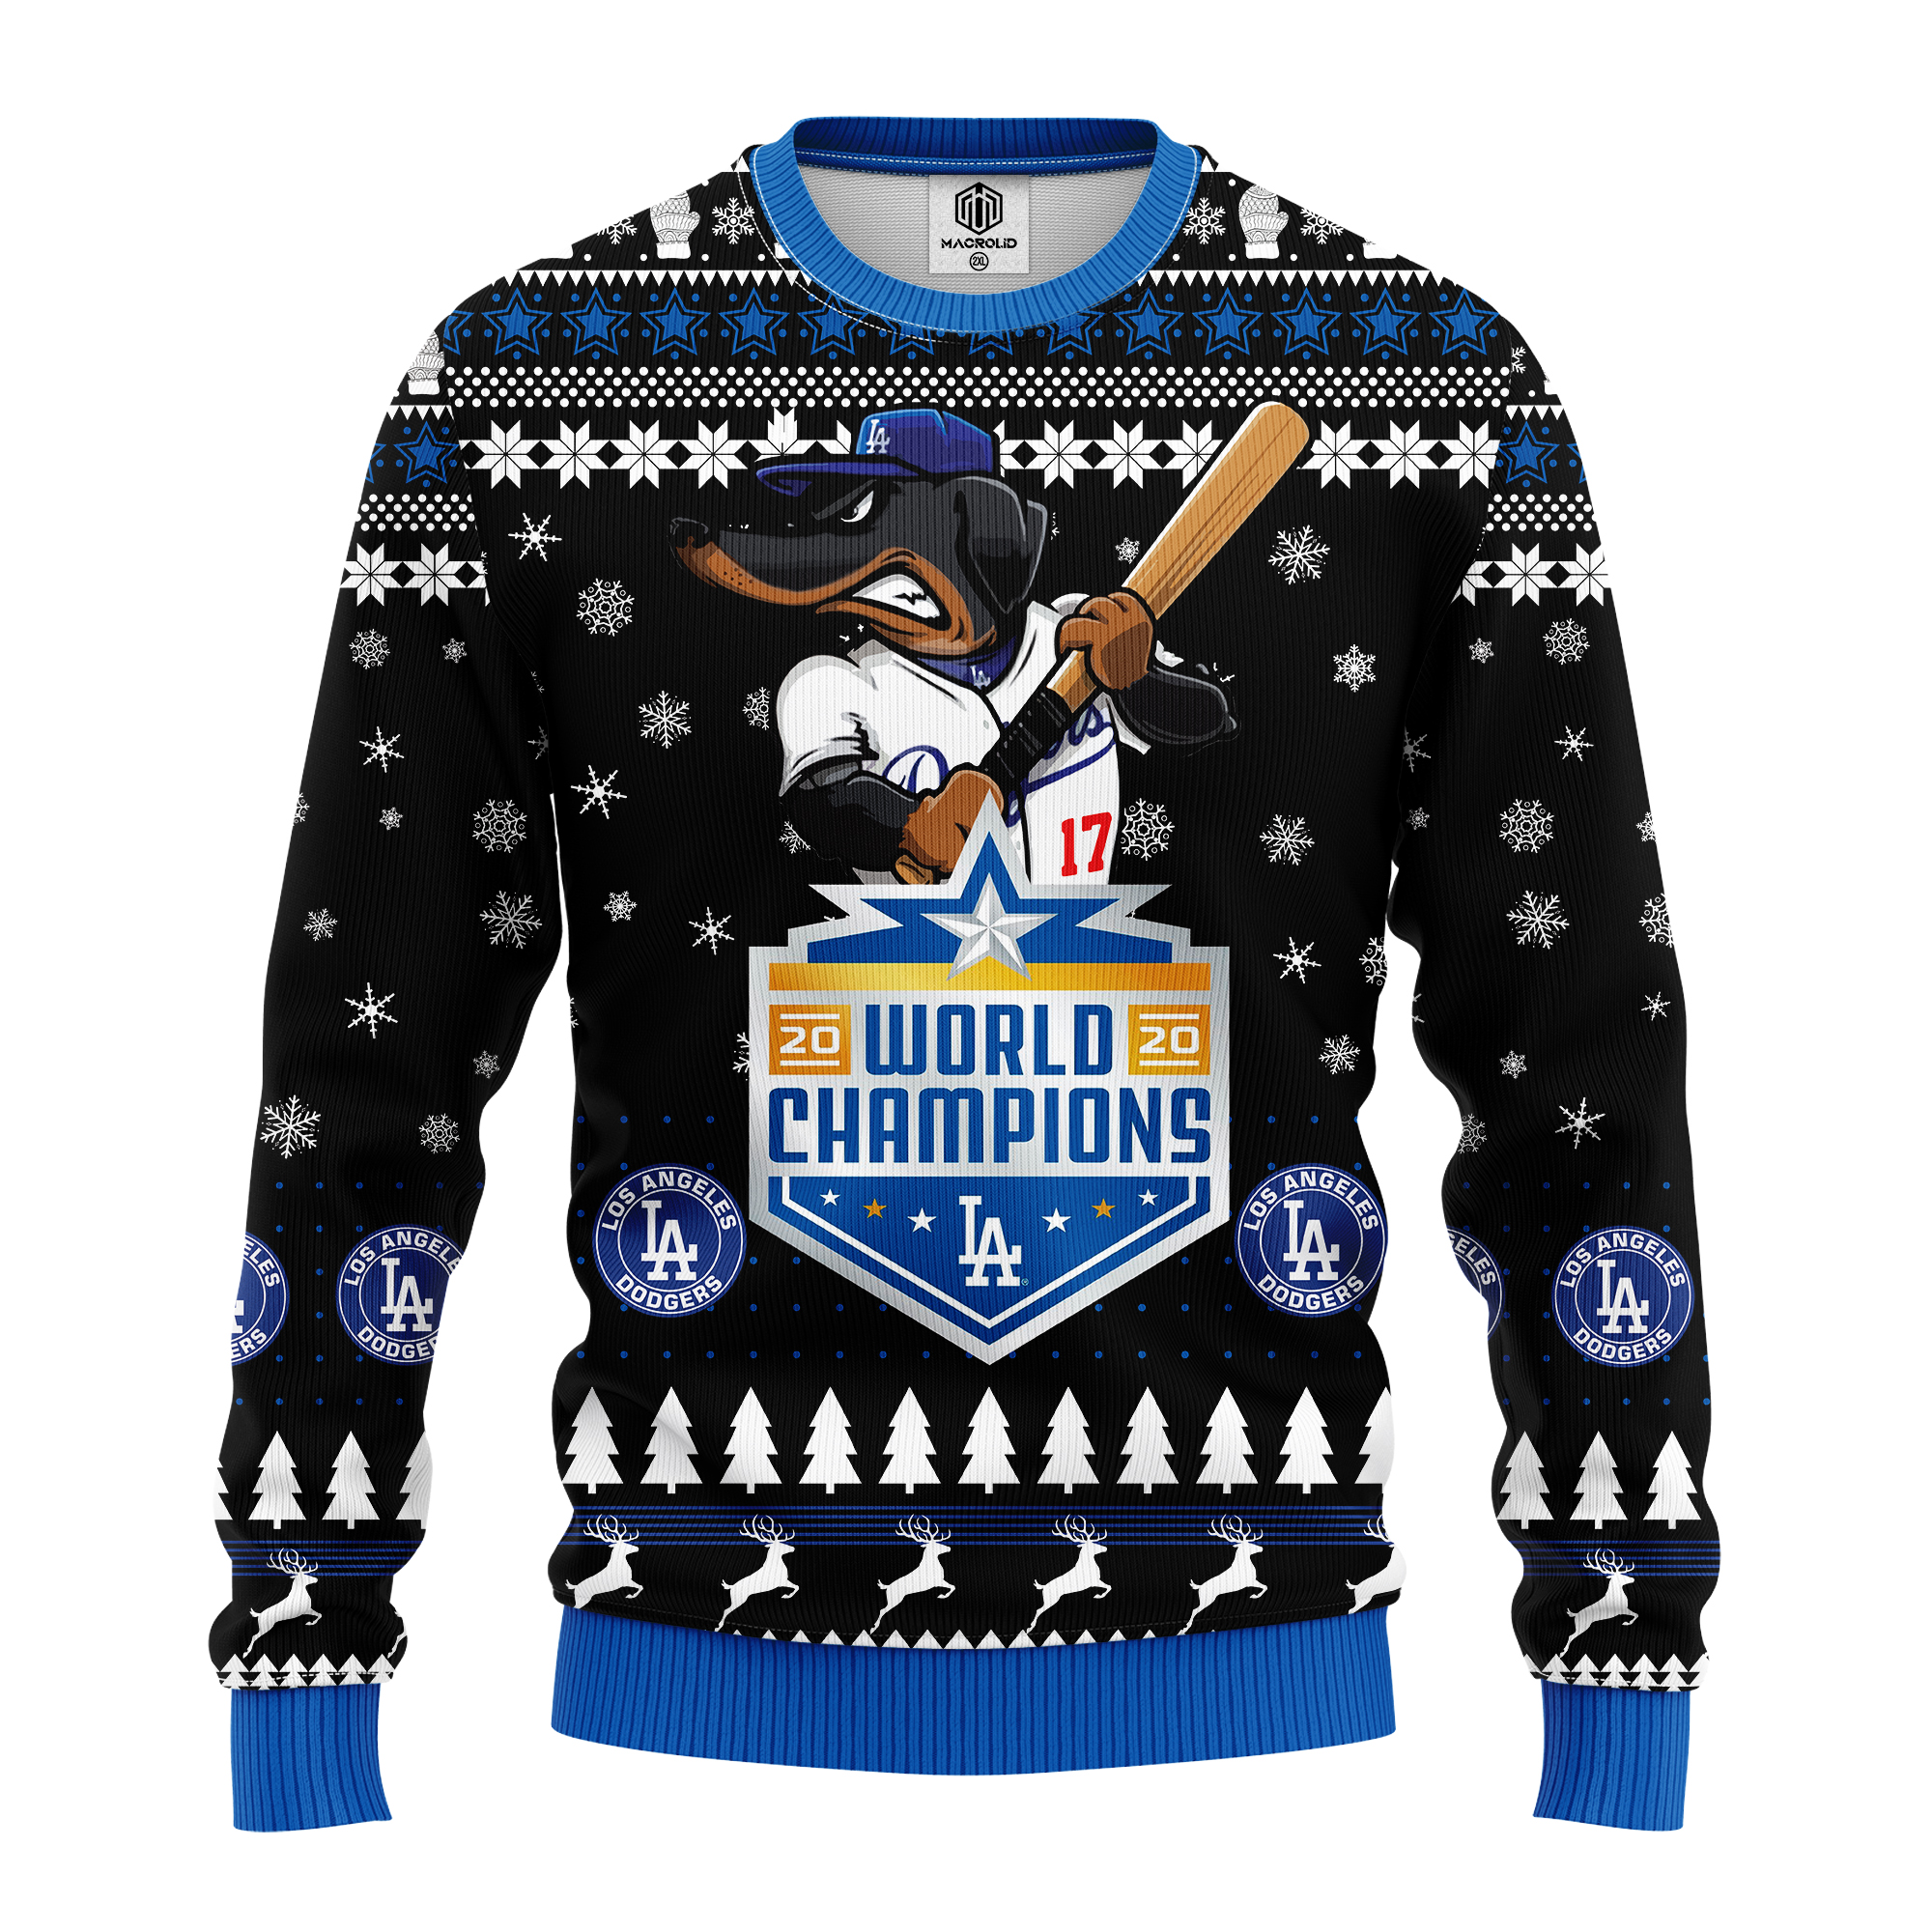 los angeles dodgers world champions 2020 all over printed ugly christmas sweater 4